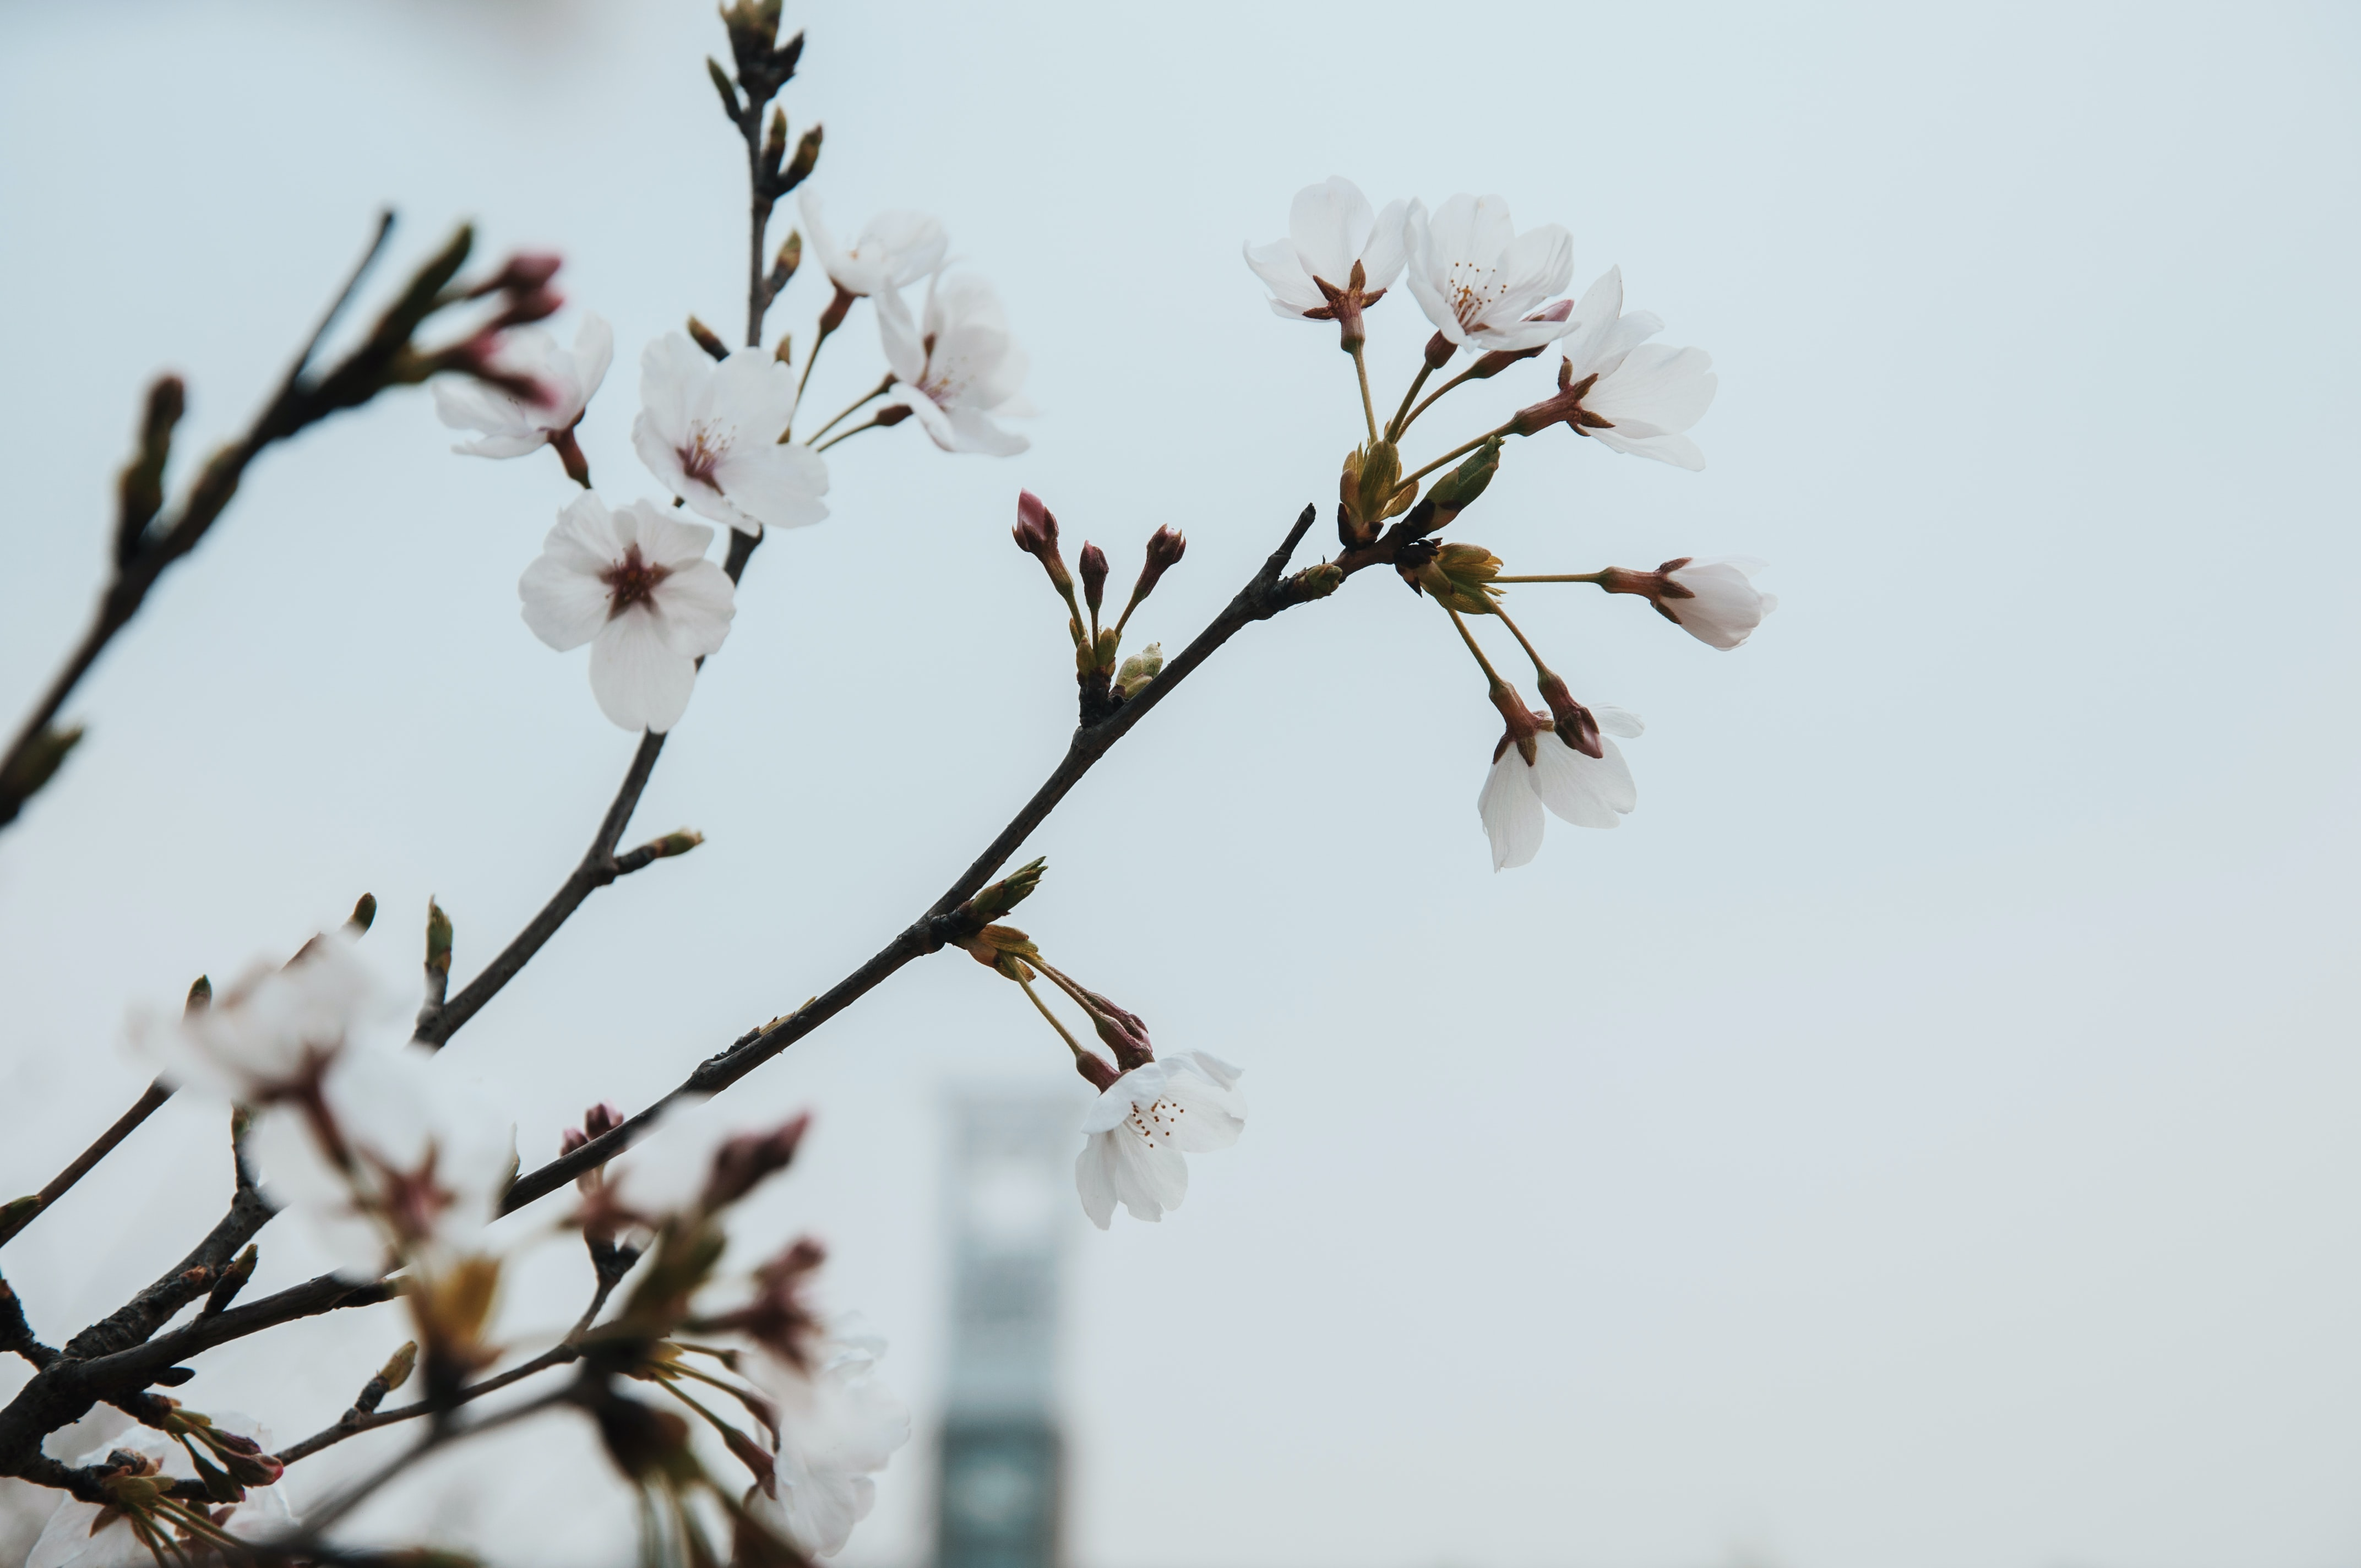 Branch with pink blossom flowers against clear sky with building in background